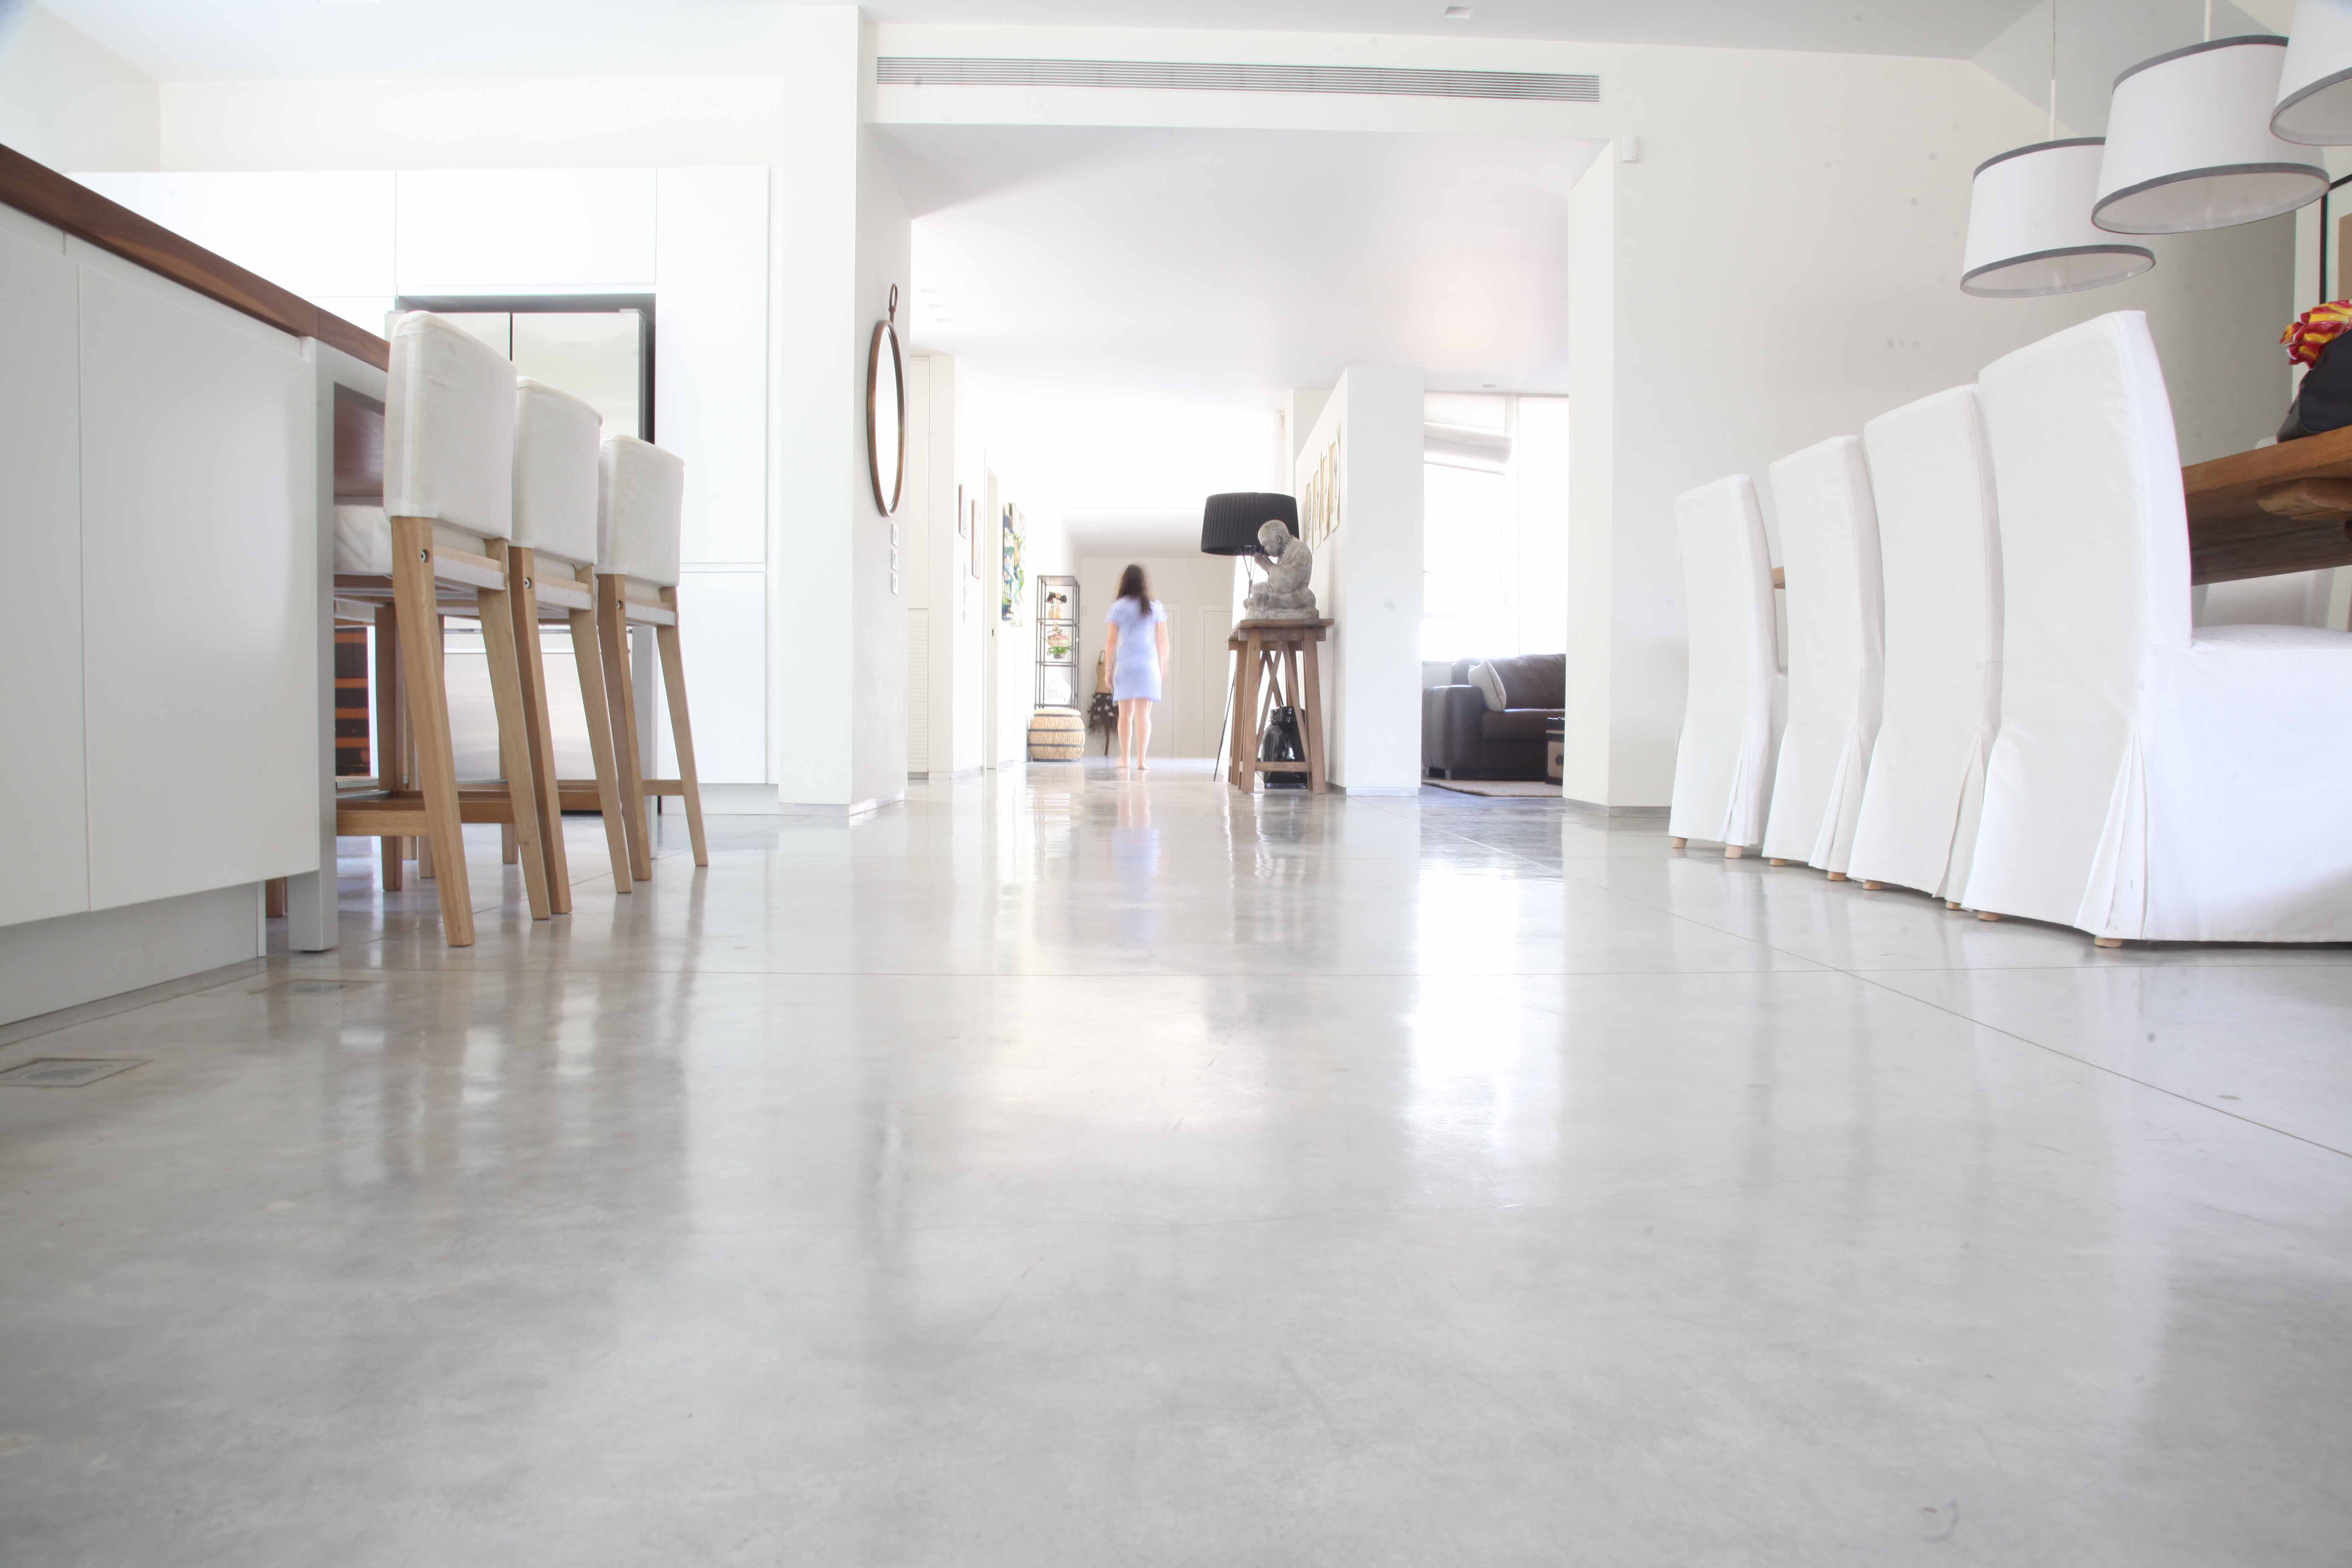 Open space in a house with a smooth concrete floor. Furniture in white and light gray